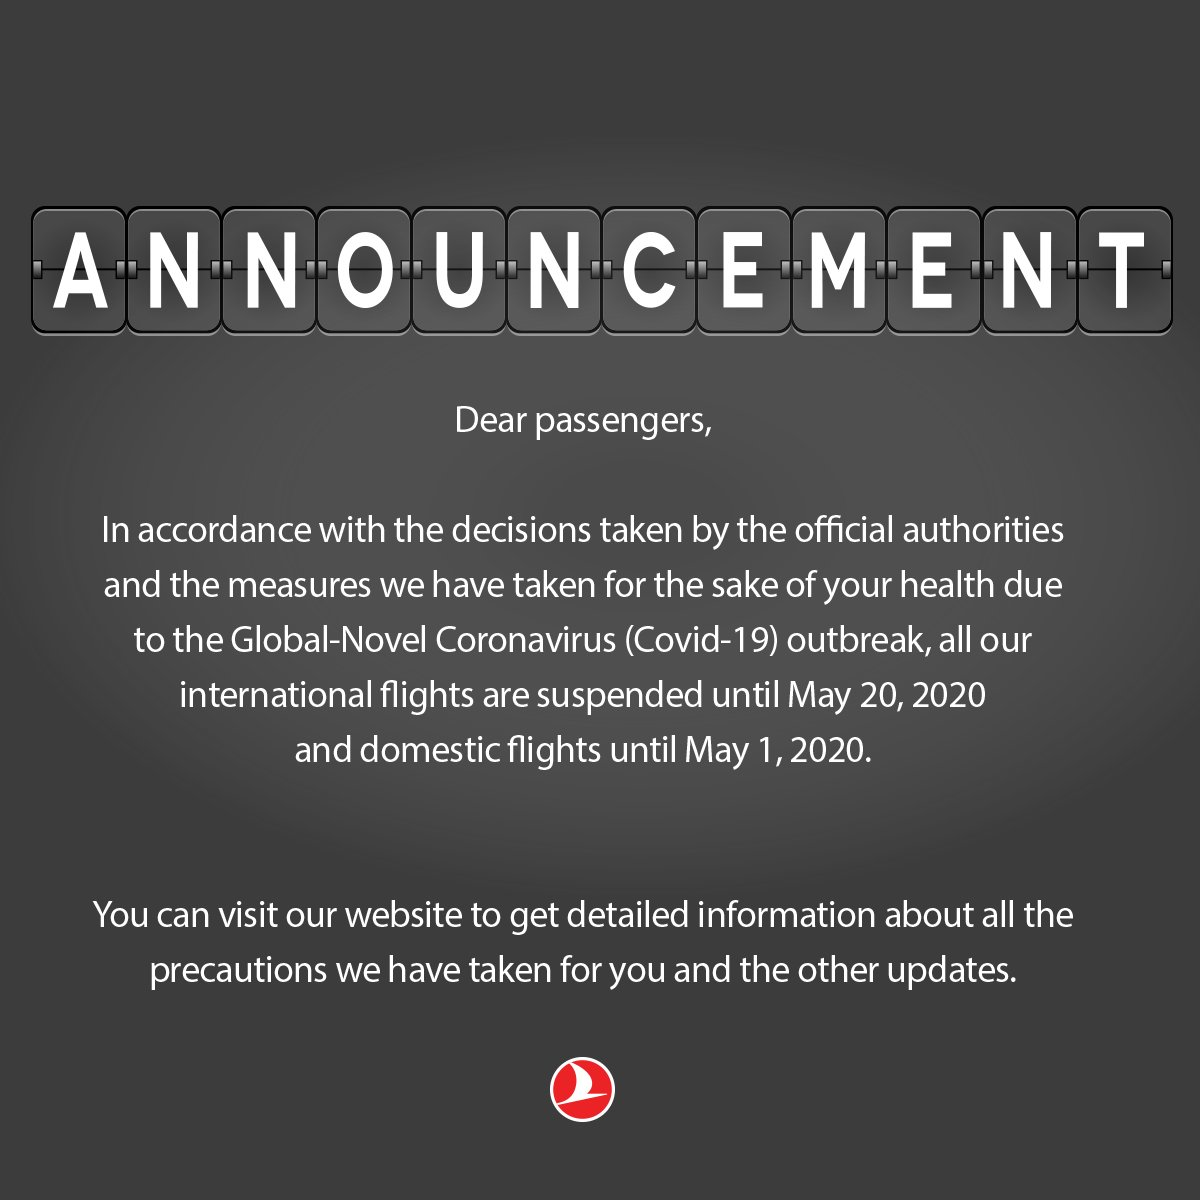 Attention to our passengers;   🔎https://t.co/alP9N5cTCx https://t.co/gjoFvzuspk